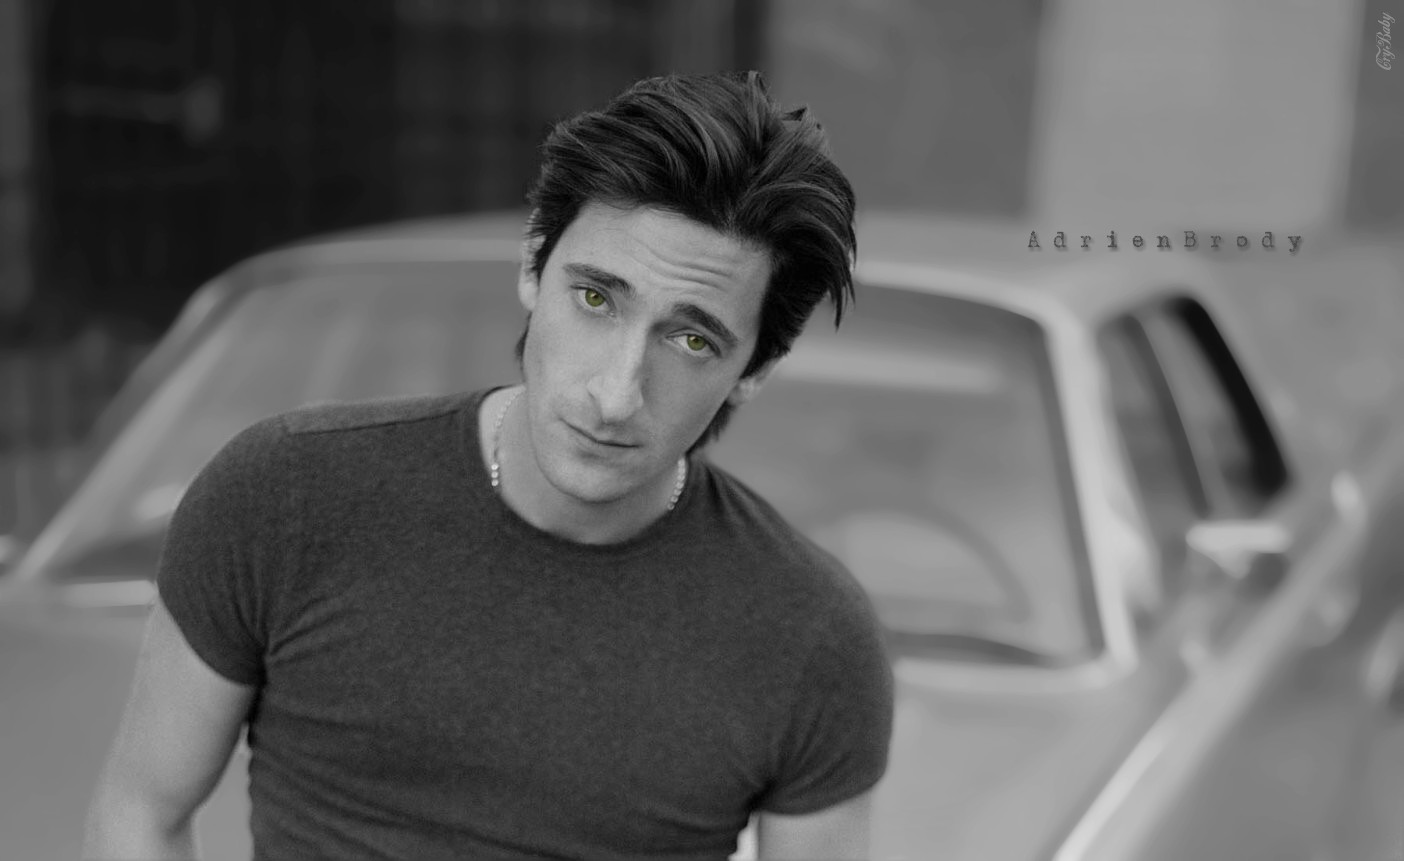 HD Quality Wallpaper | Collection: Celebrity, 1404x861 Adrien Brody